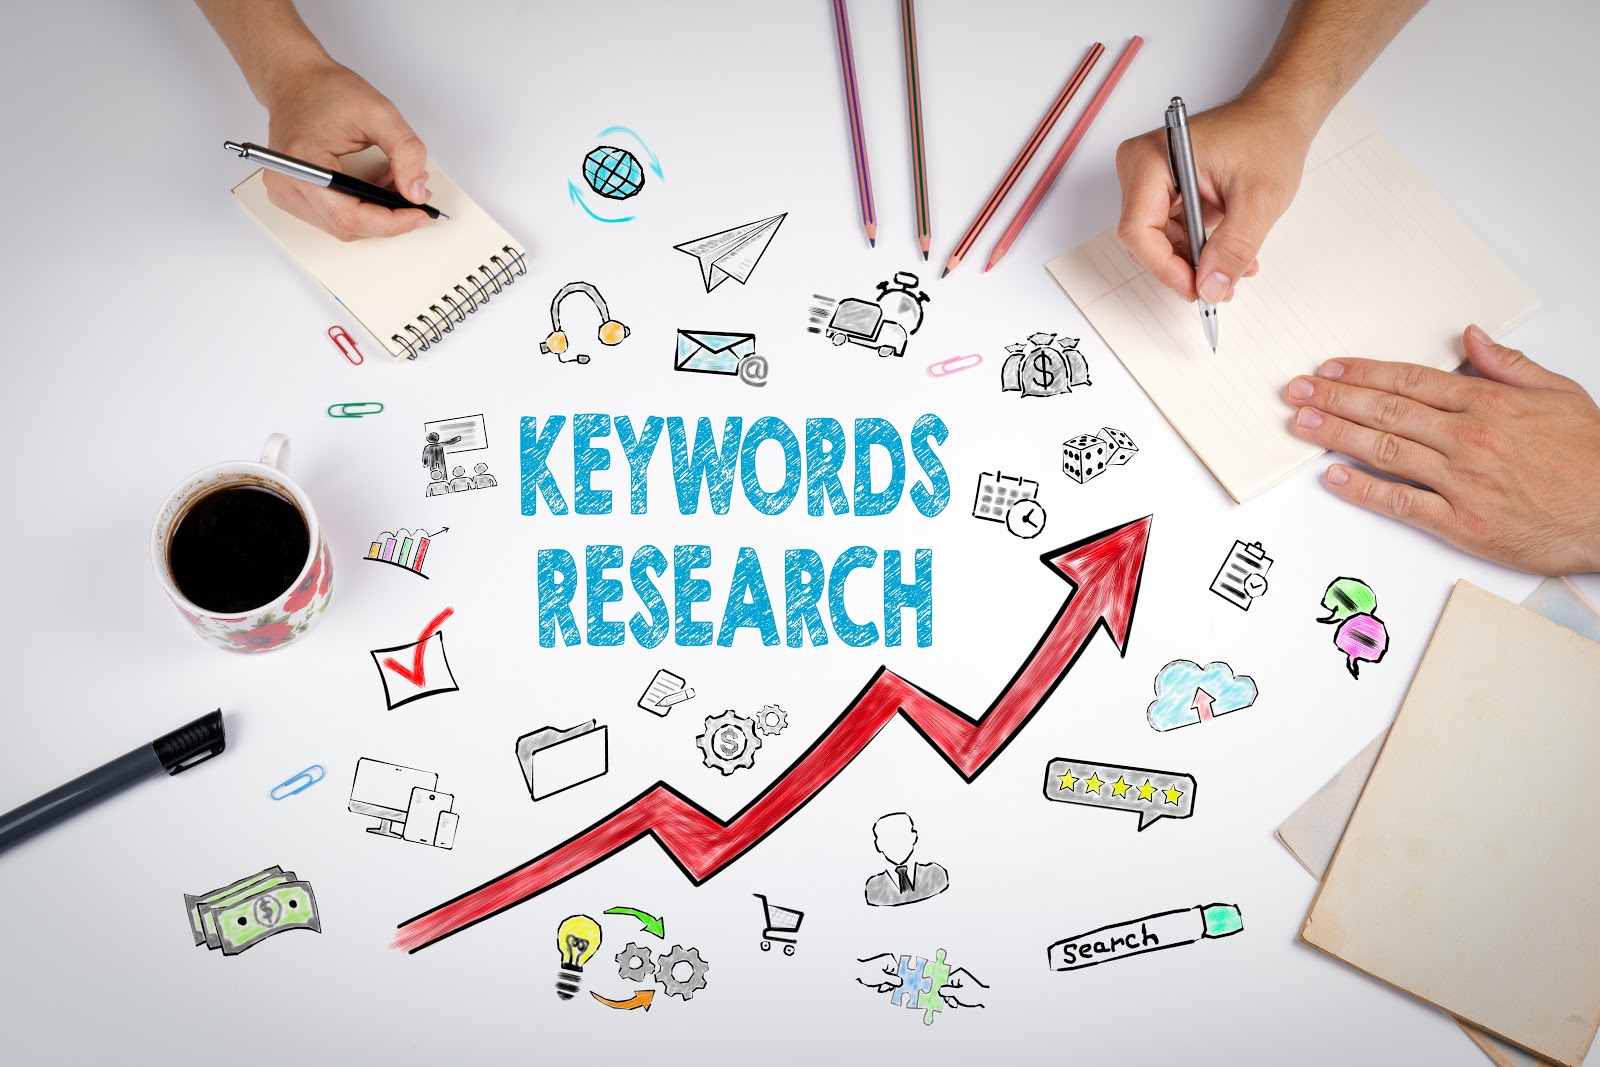 Keyword research is time consuming, but is worth every second of your time spent on it.